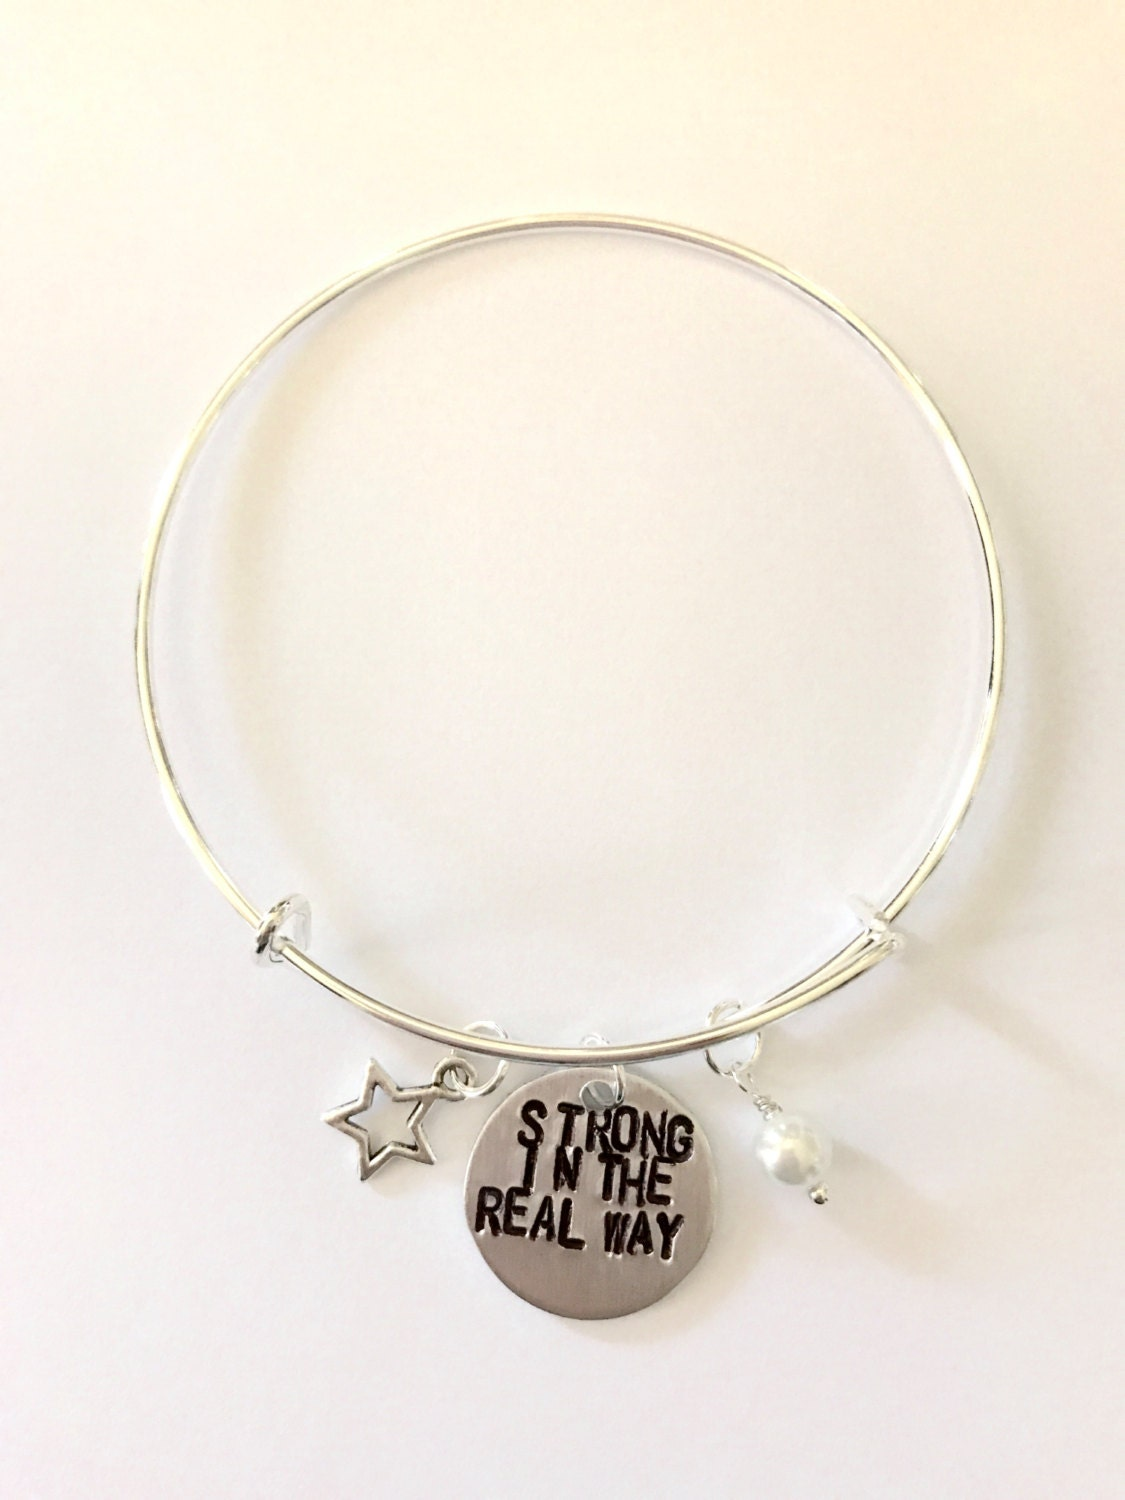 Steven Universe Pearl Inspired Bangle - Strong in the Real Way